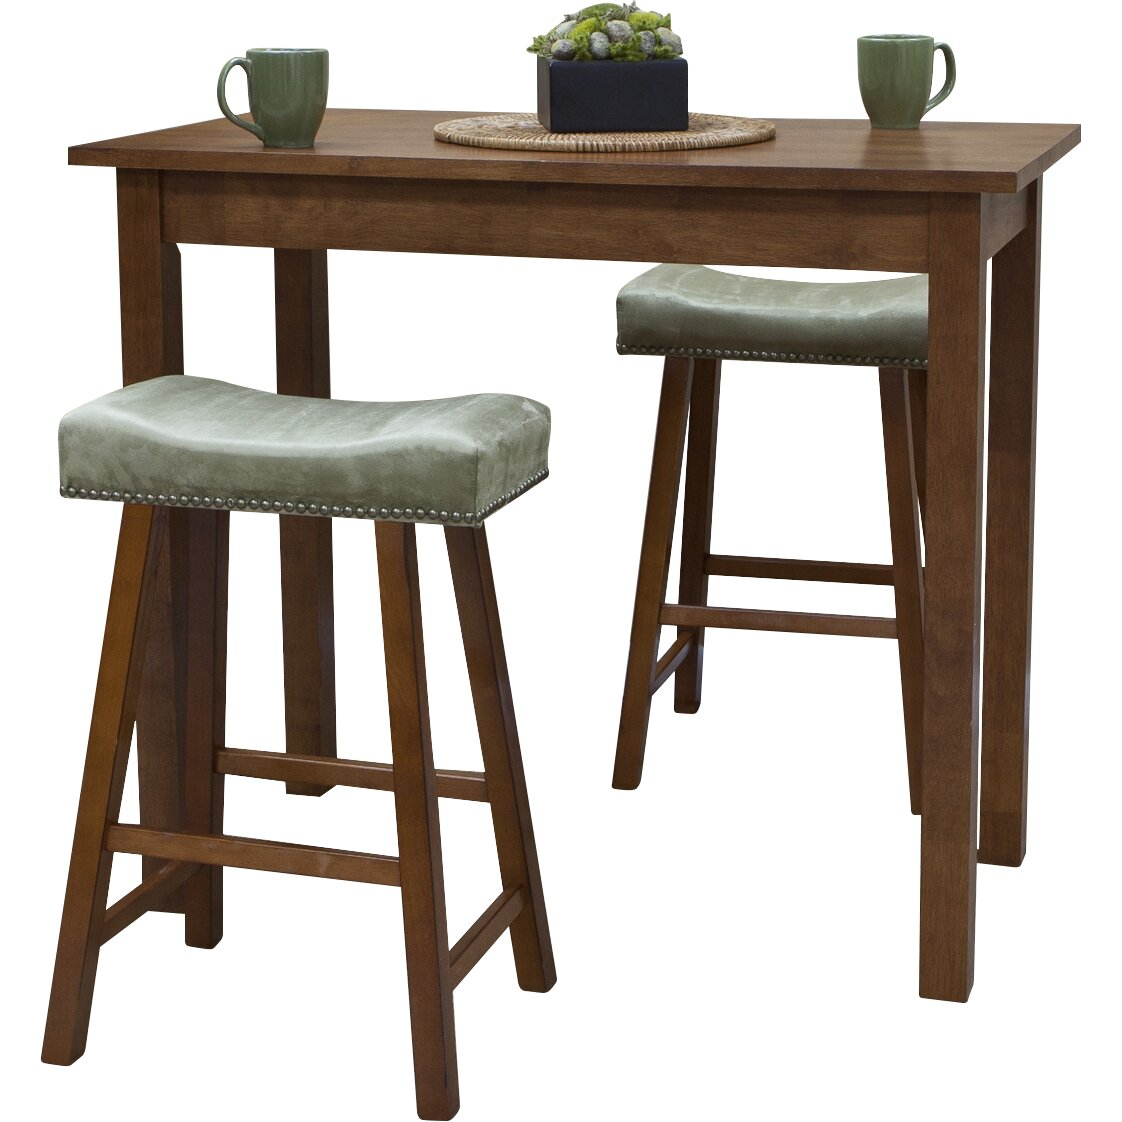 Trent Austin Design Gilpatrick Counter Height Dining Table  : Trent Austin Design25C225AE Gilpatrick Counter Height Dining Table from www.wayfair.com size 1122 x 1122 jpeg 175kB